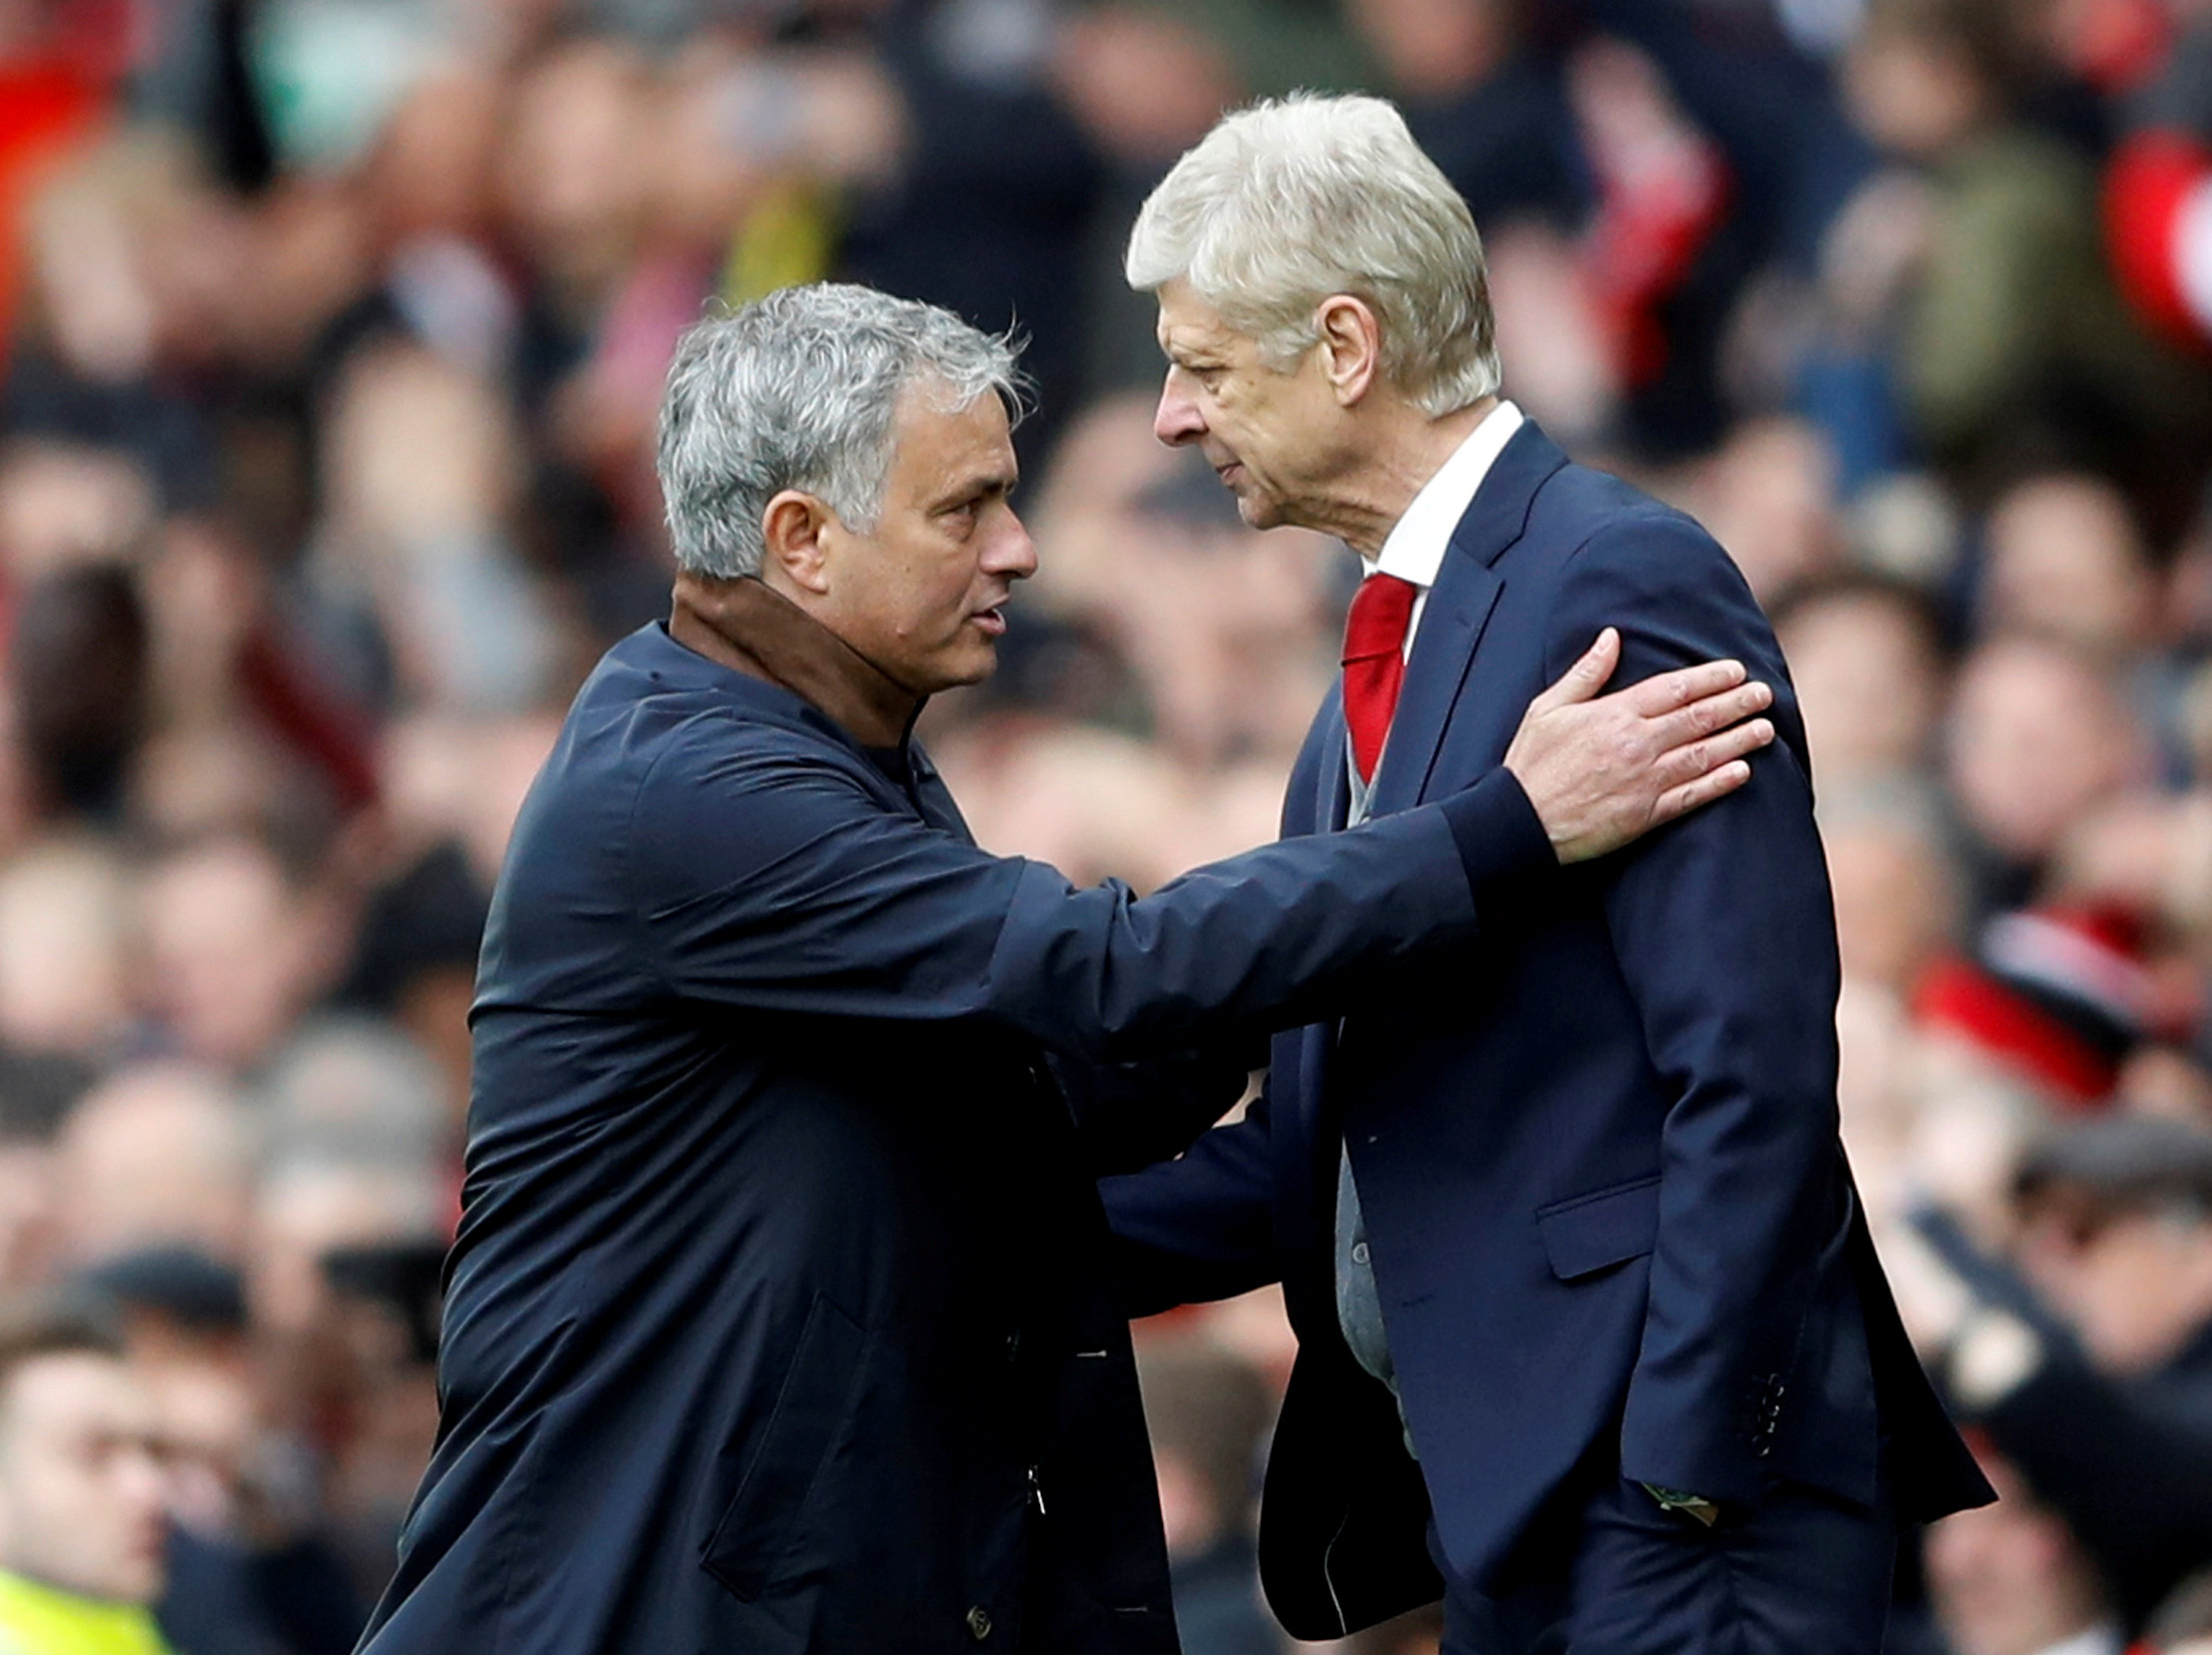 Wenger hits back at Mourinho saying their relationship is 'like Kindergarten' as fallout over book omission continues